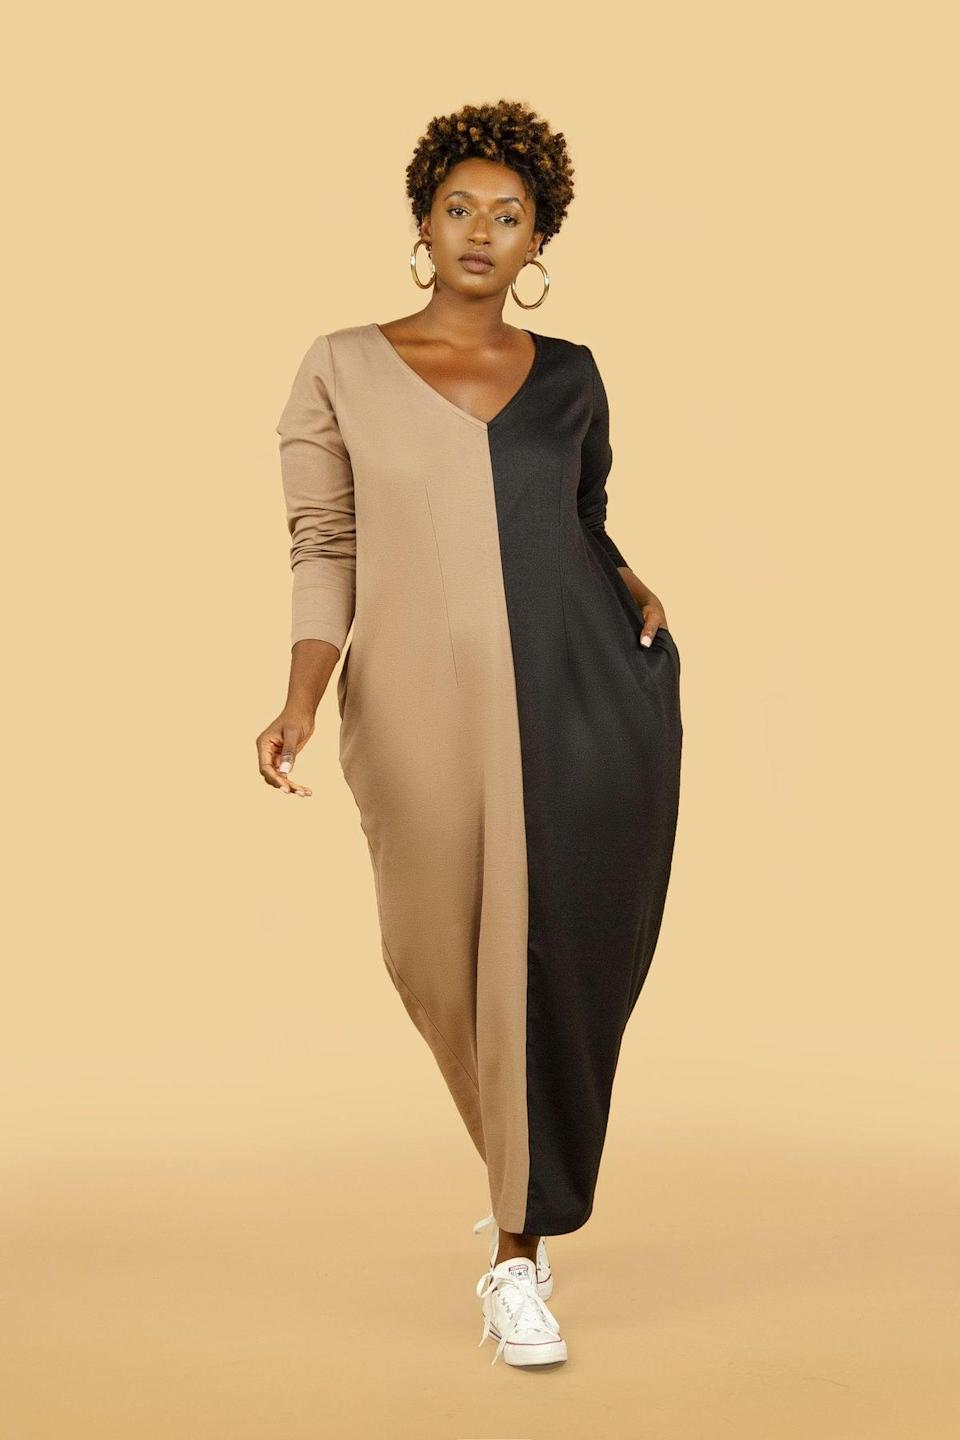 "<br><br><strong>JIBRI</strong> Two-Tone Maxi Cocoon Dress, $, available at <a href=""https://go.skimresources.com/?id=30283X879131&url=https%3A%2F%2Fwww.jibrionline.com%2Fcollections%2Fnew-arrivals%2Fproducts%2Fjibri-two-tone-maxi-cocoon-dress"" rel=""nofollow noopener"" target=""_blank"" data-ylk=""slk:Jibri"" class=""link rapid-noclick-resp"">Jibri</a>"